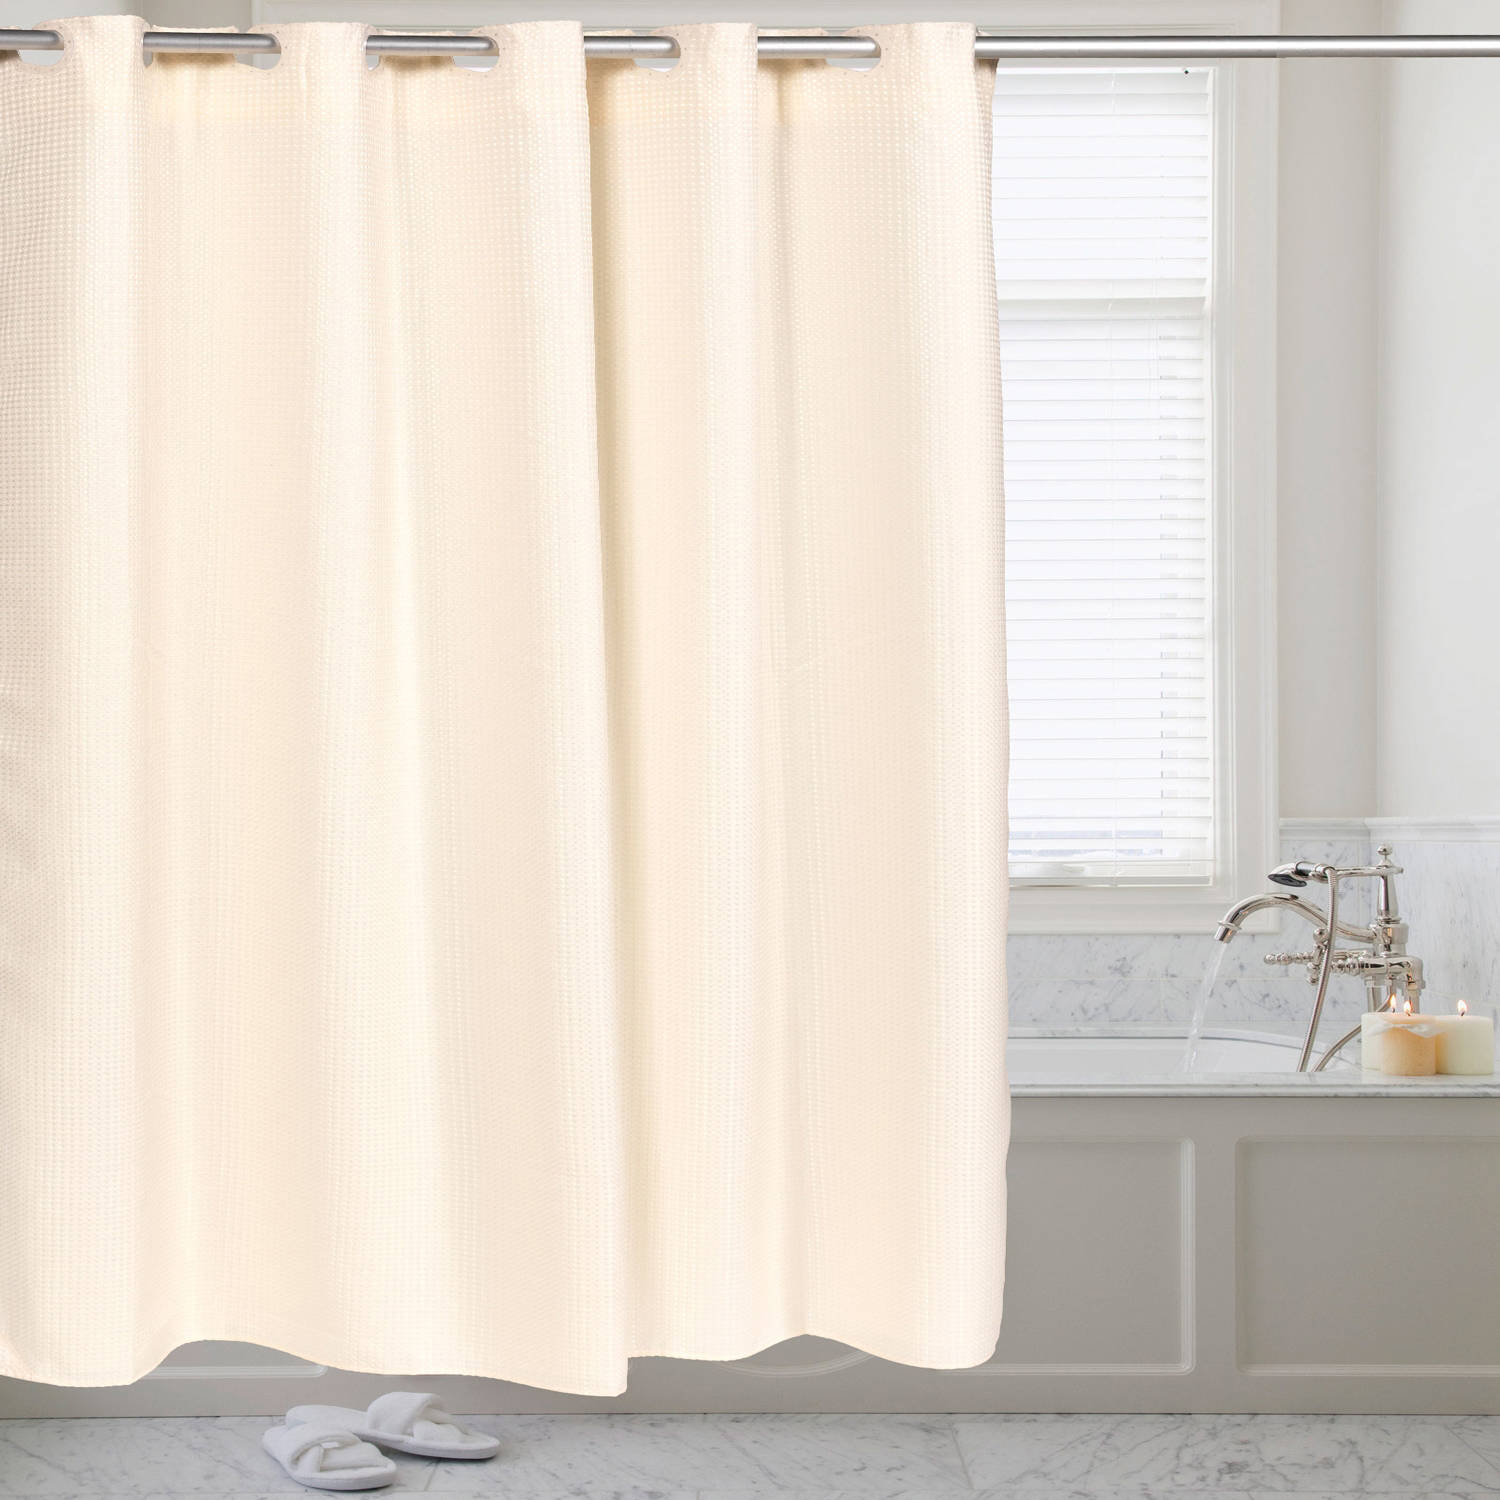 Fabric Shower Curtain Waffle Weave Hookless With Snap Off